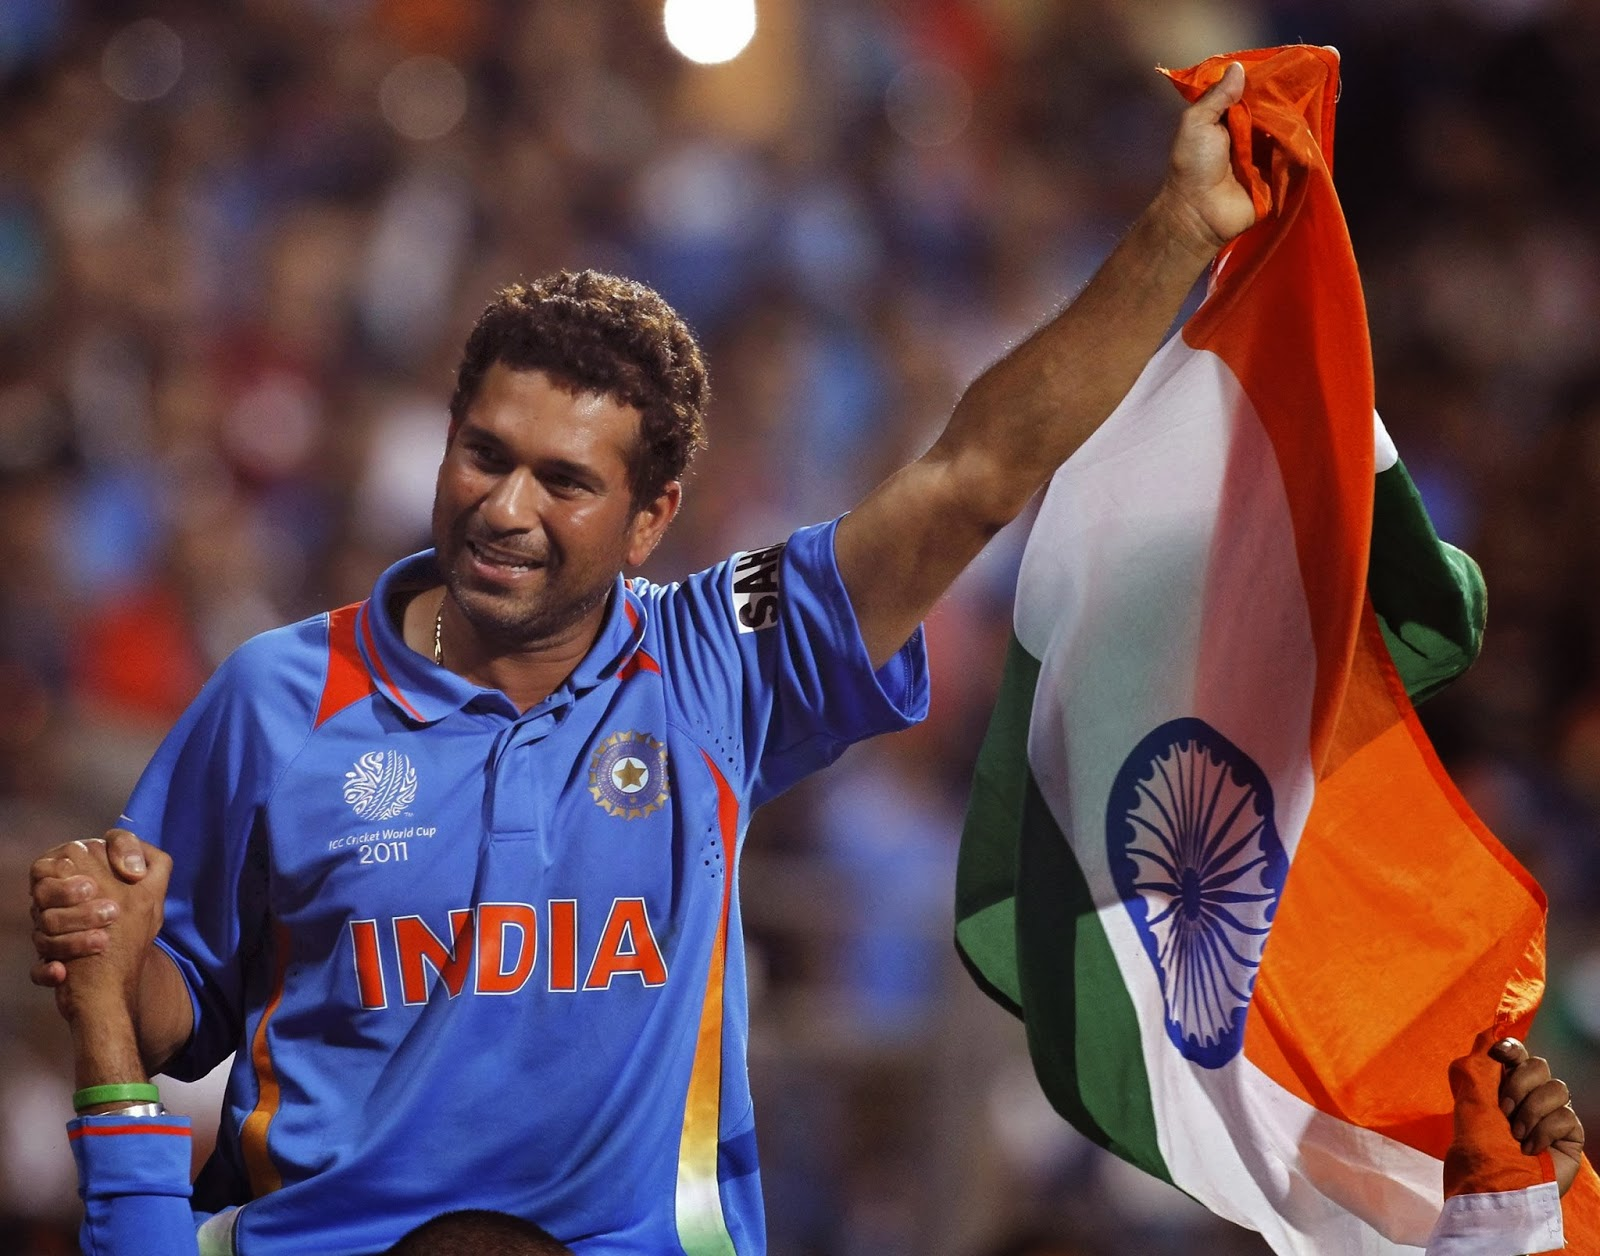 download sachin tendulkar images, wallpapers , photos in high